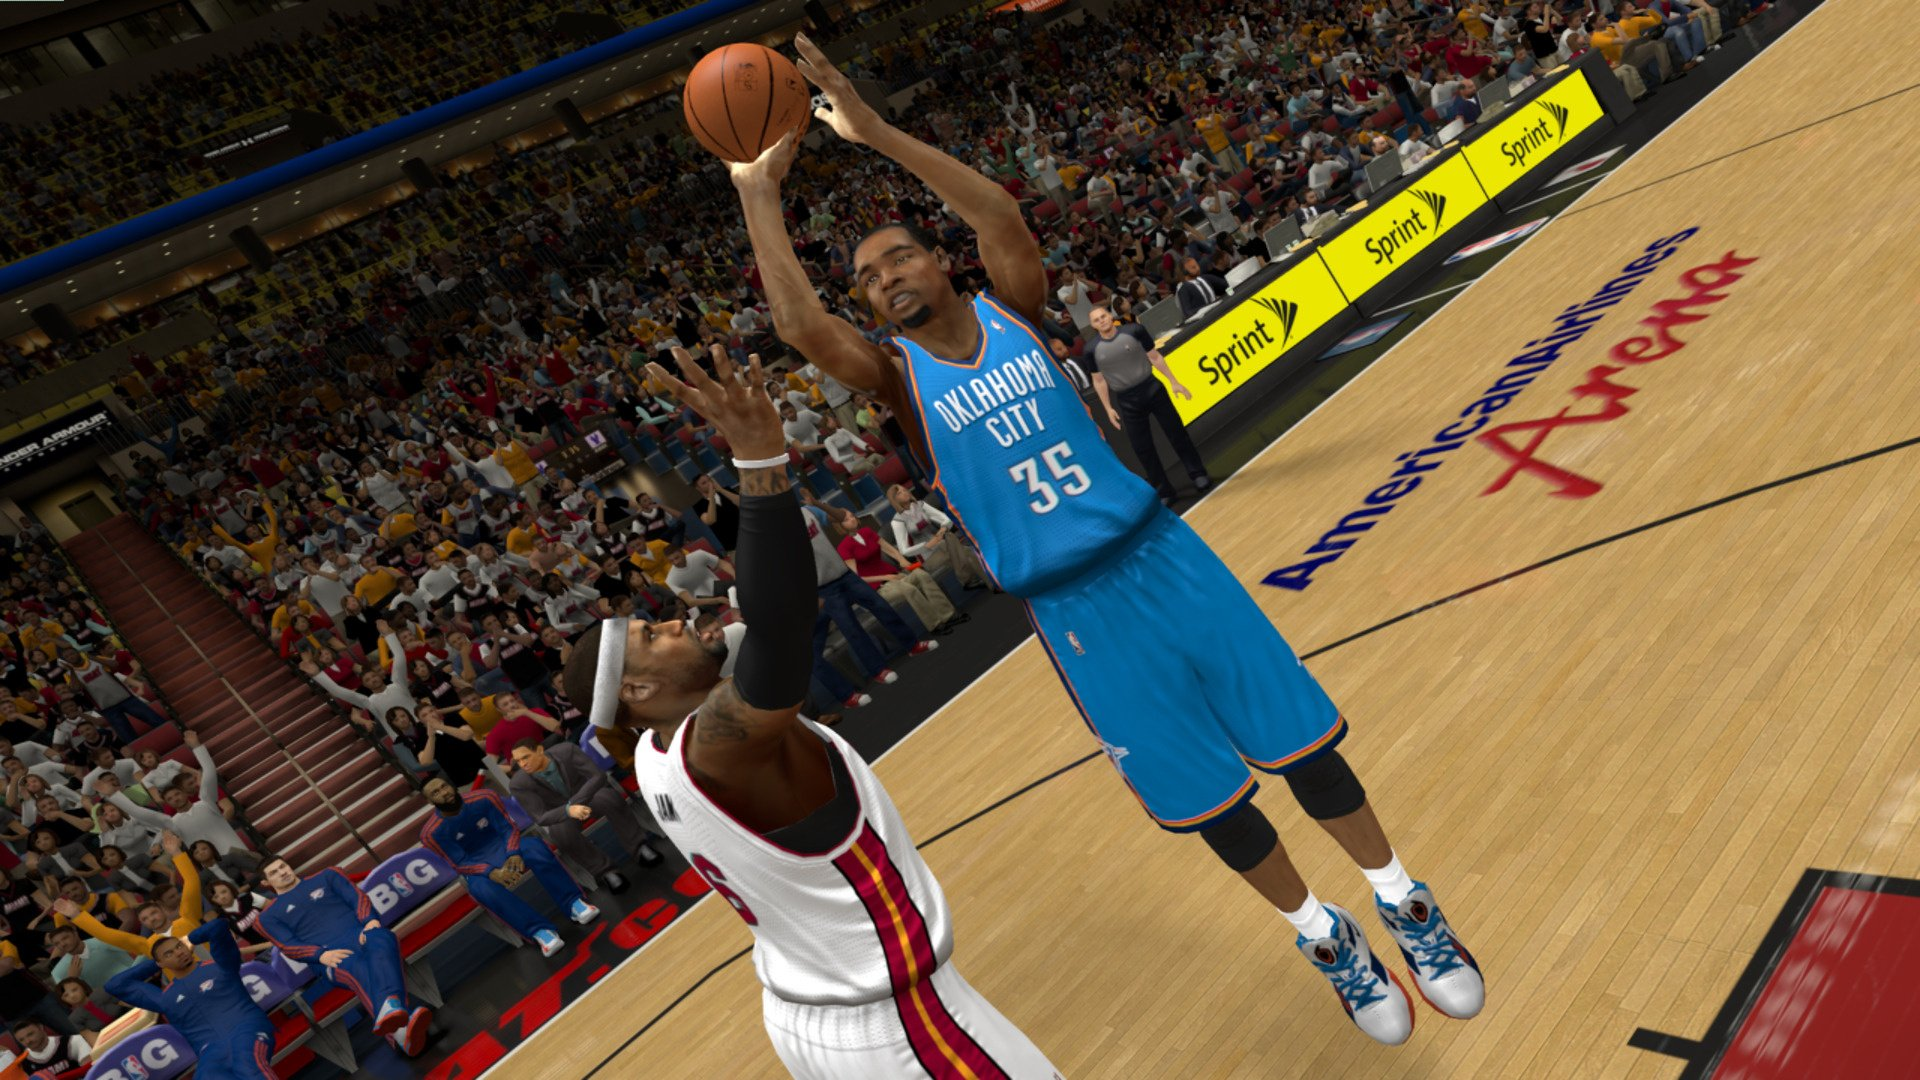 Nba 2k13 coach profile tips for dating. 2001 space odyssey explained yahoo dating.